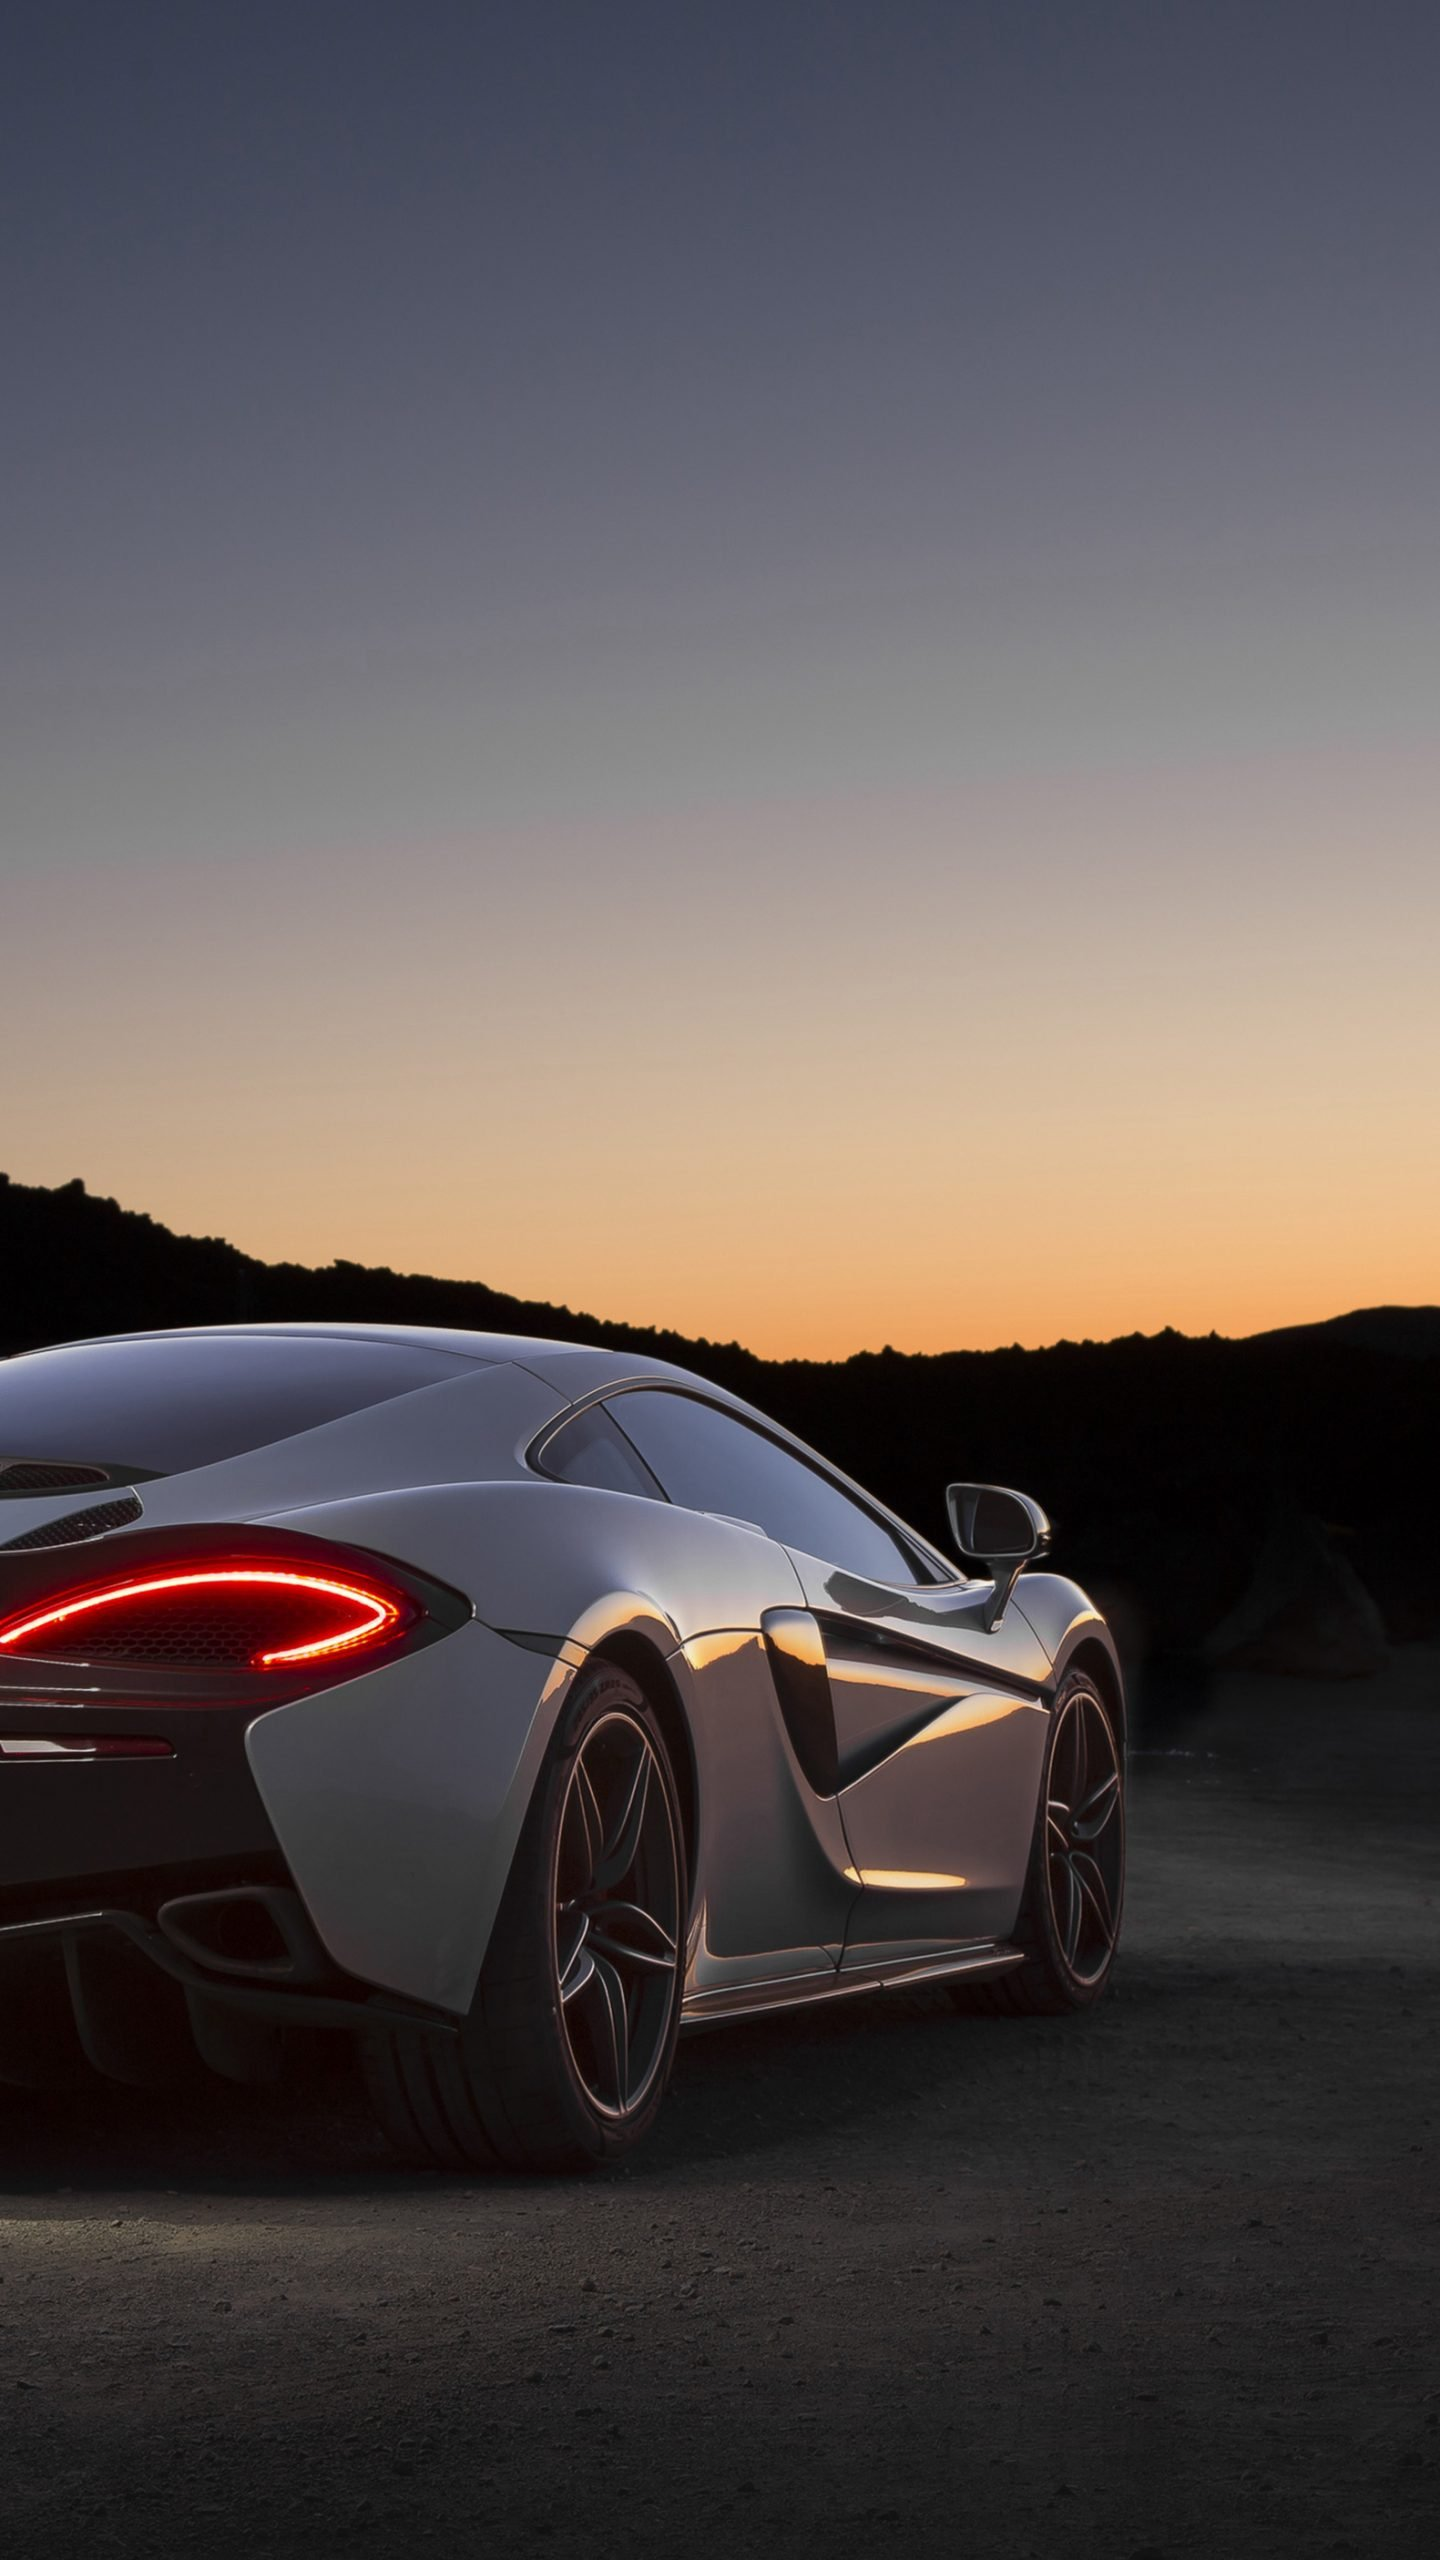 4k Wallpaper Of Cars   Automotive Wallpapers 1440x2560